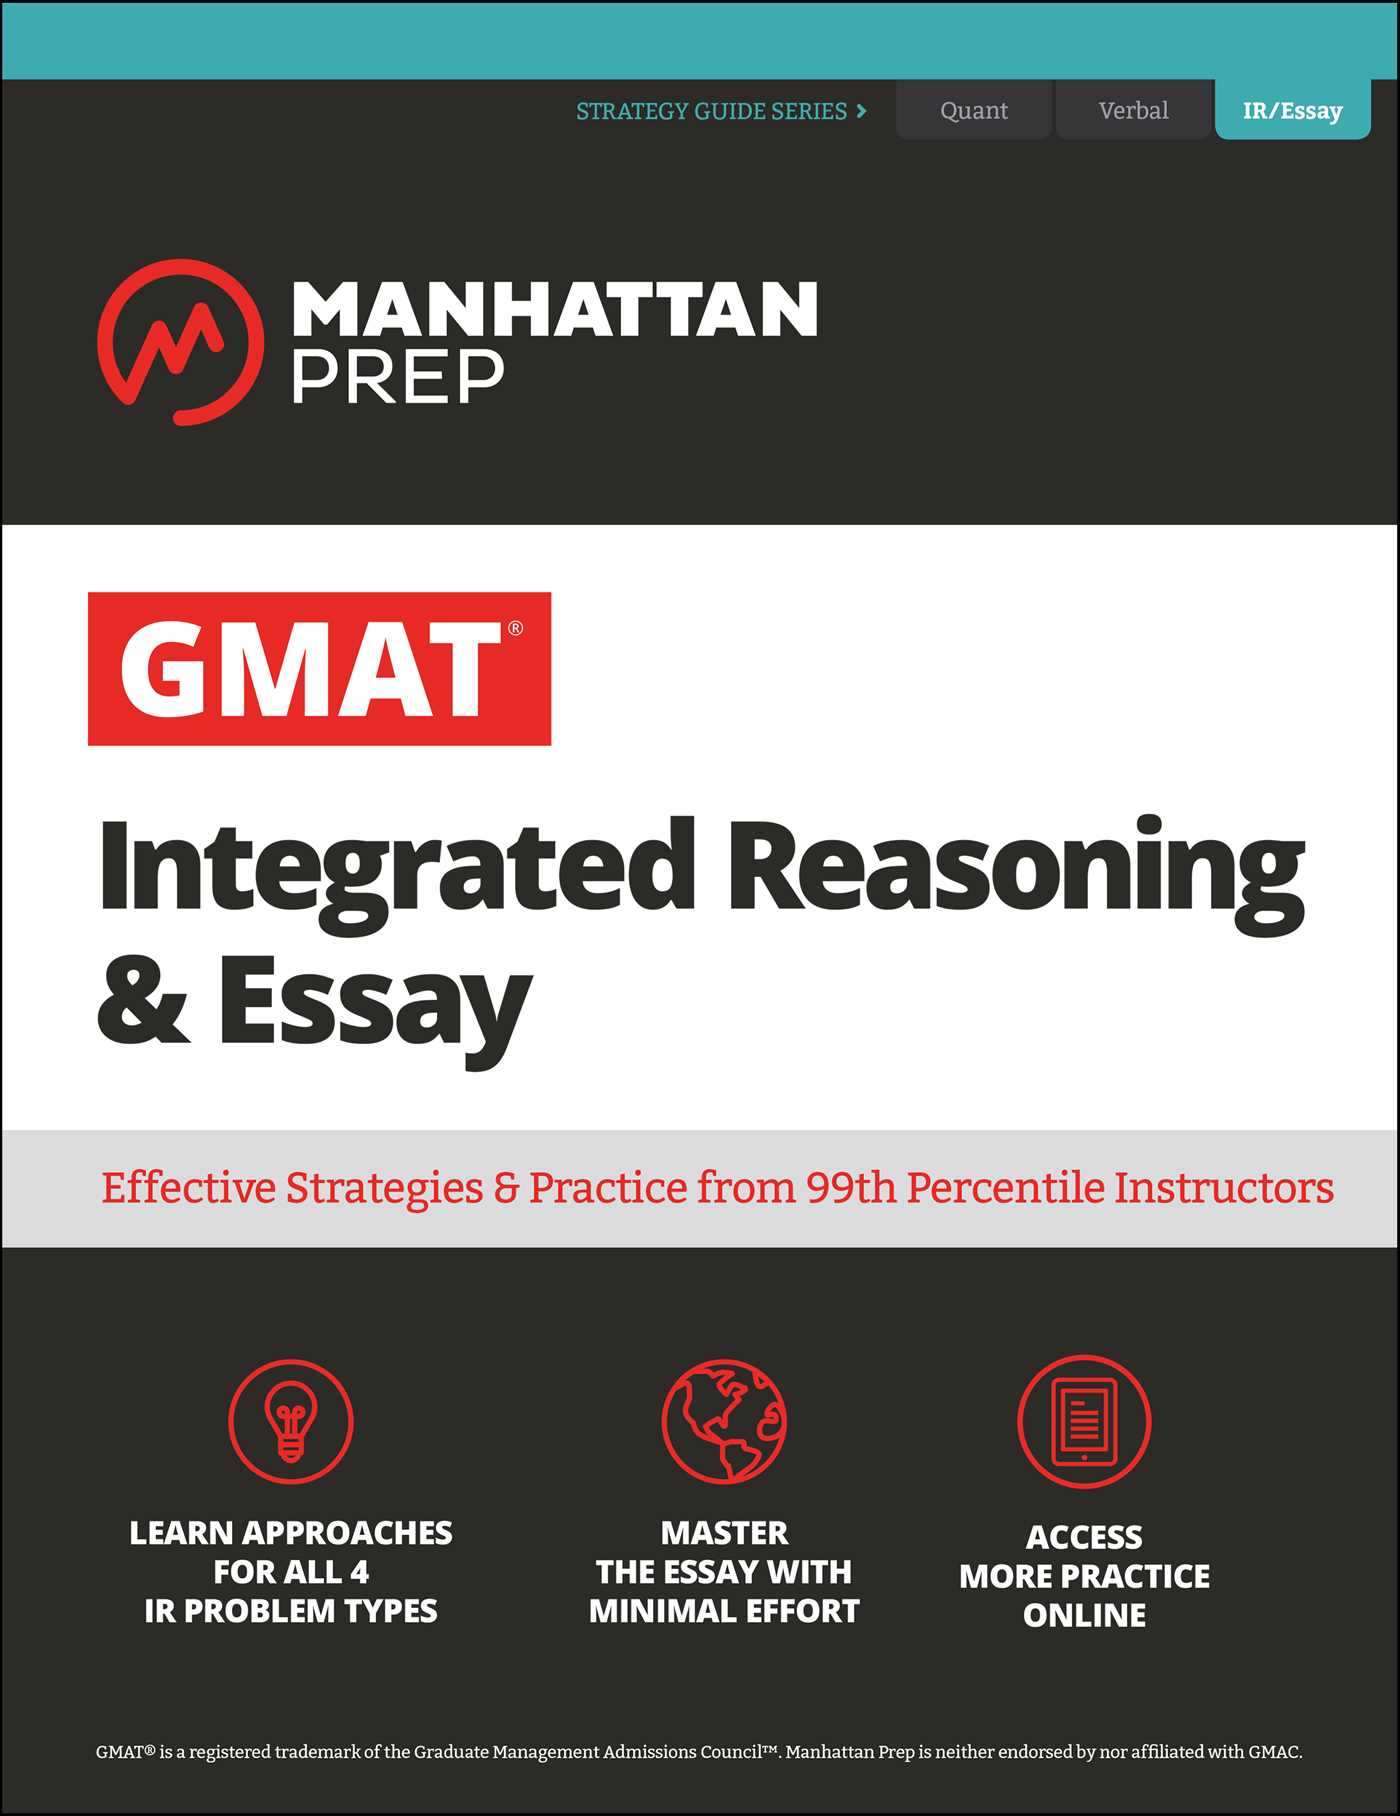 GMAT-Integrated-Reasoning- -Essay-Strategy-Guide-Online-Resources